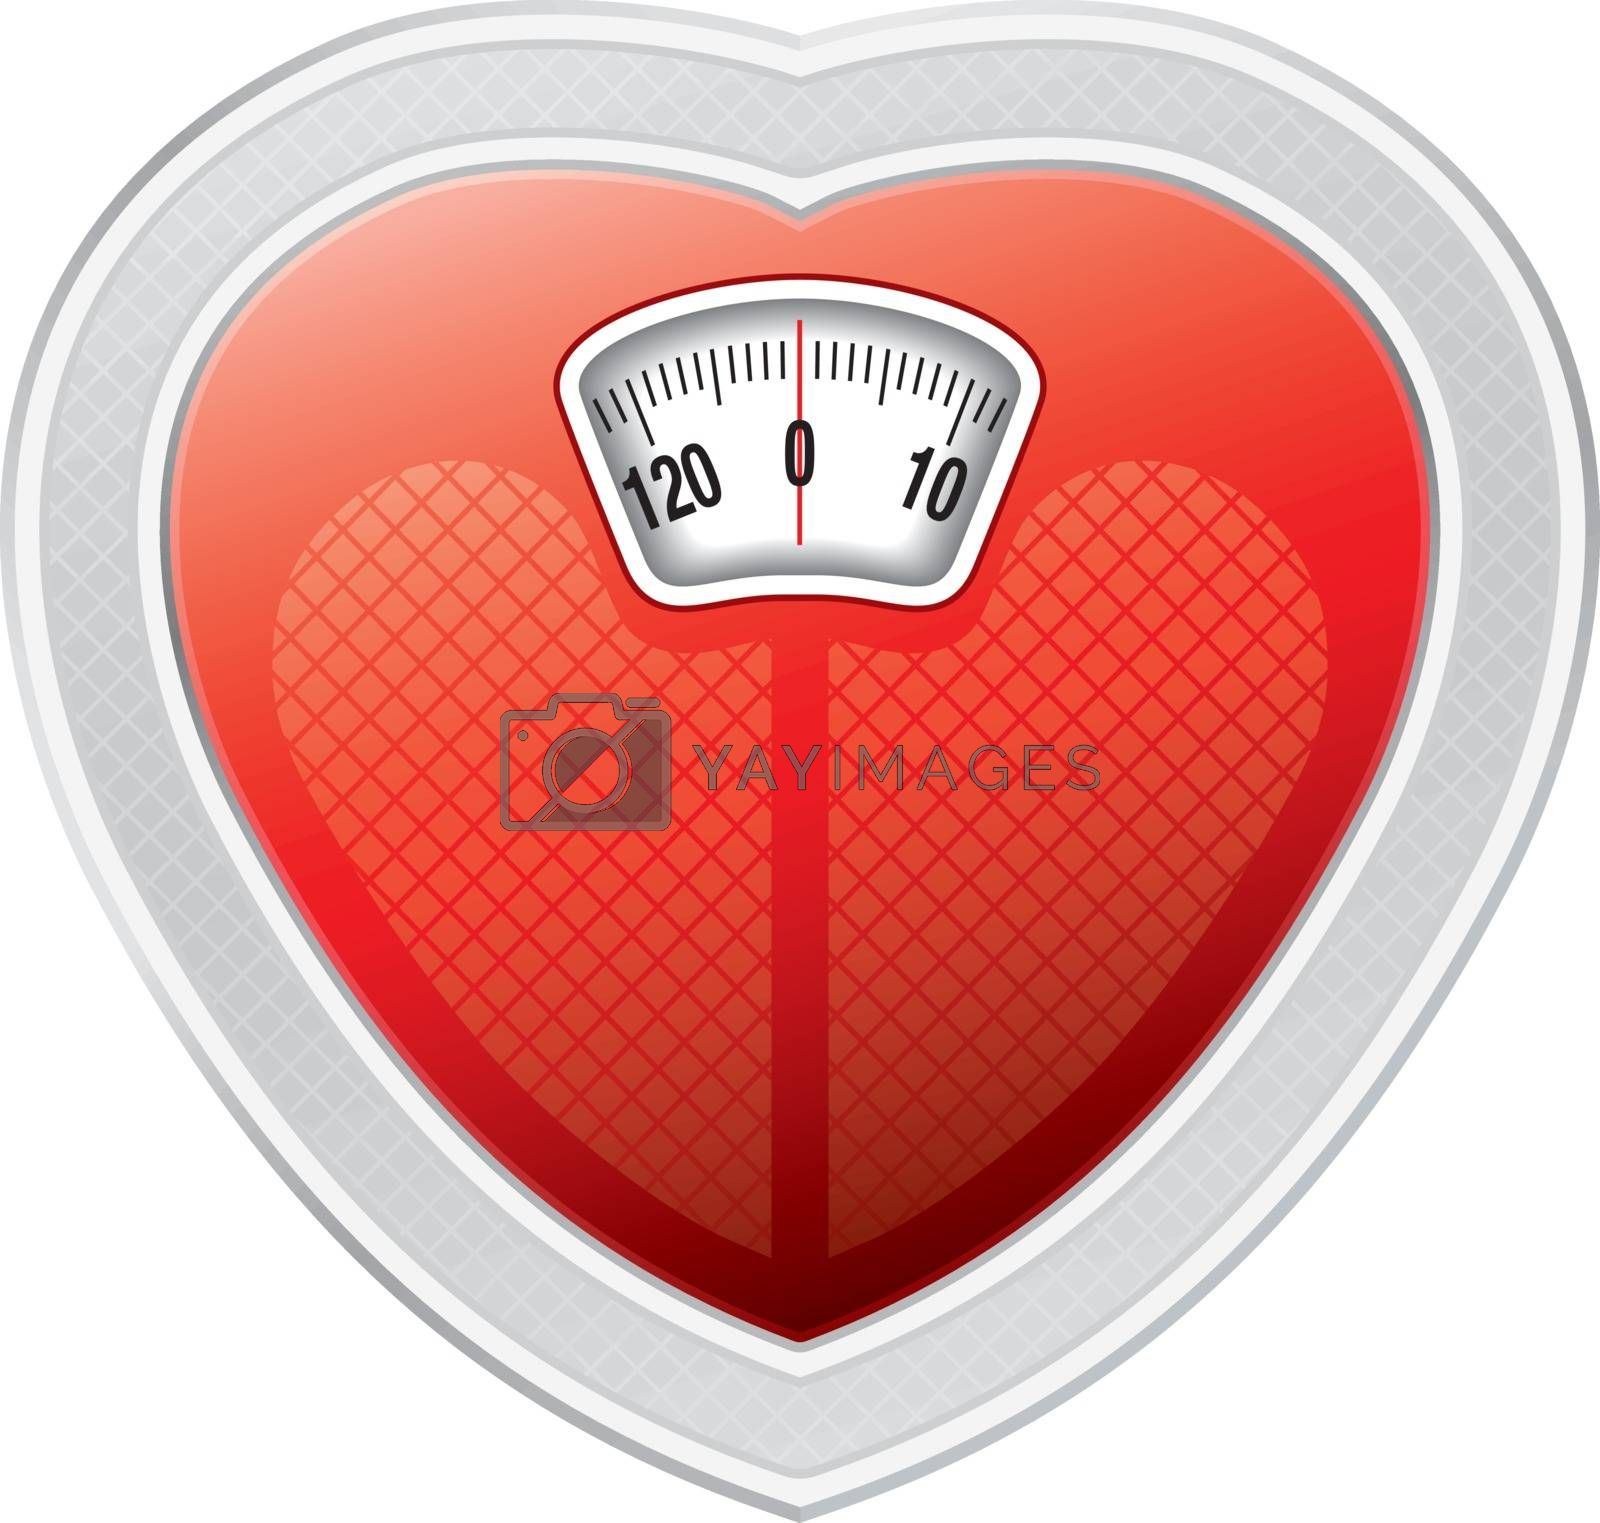 Illustration of Scale with heart shape